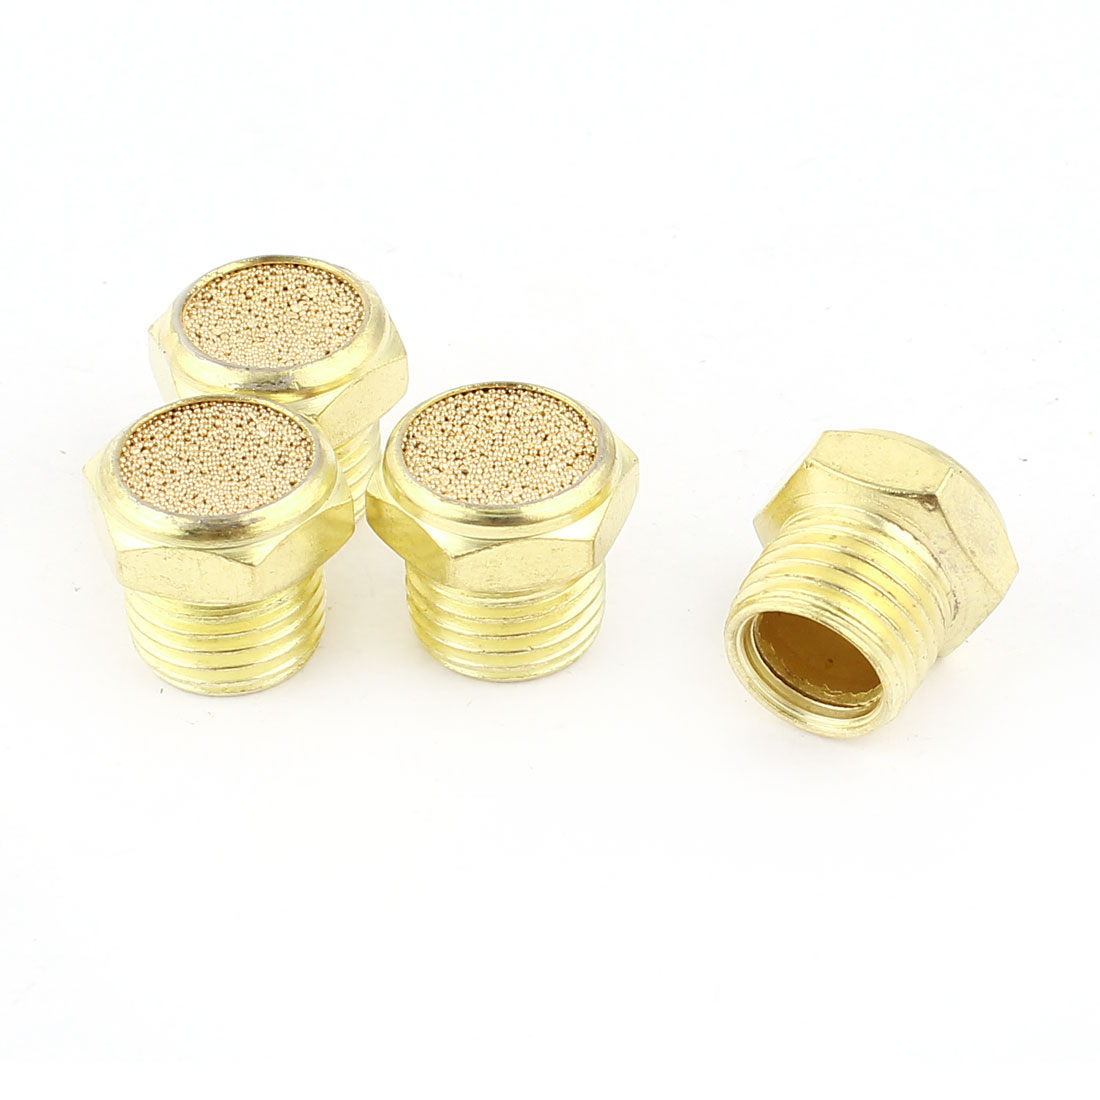 4Pcs Pipe Hex Head Fittings 1/4PT Male Threaded Pneumatic Cap Cover Gold Tone